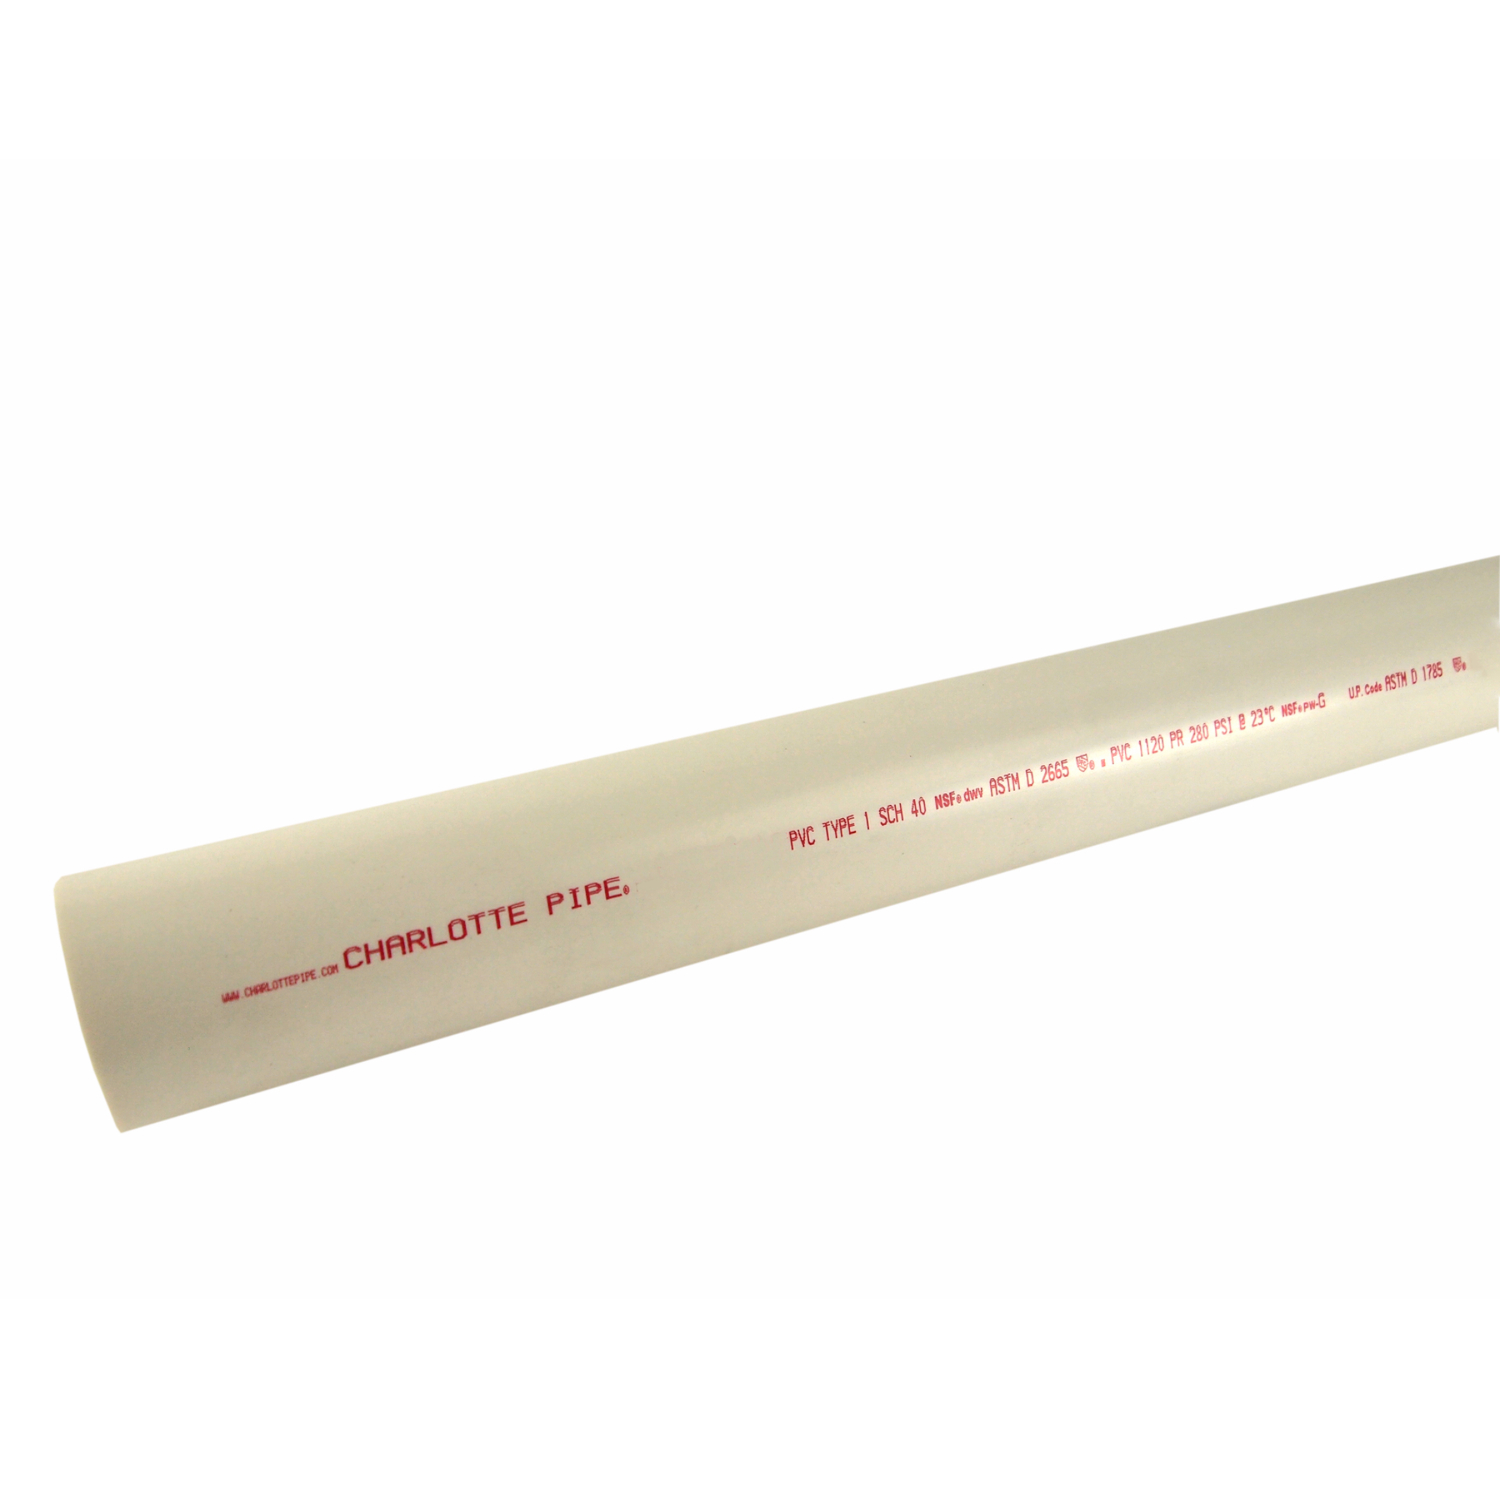 Charlotte Pipe  PVC DWV Pipe  4 in. Dia. x 10 ft. L Plain End  Schedule 40  220 psi